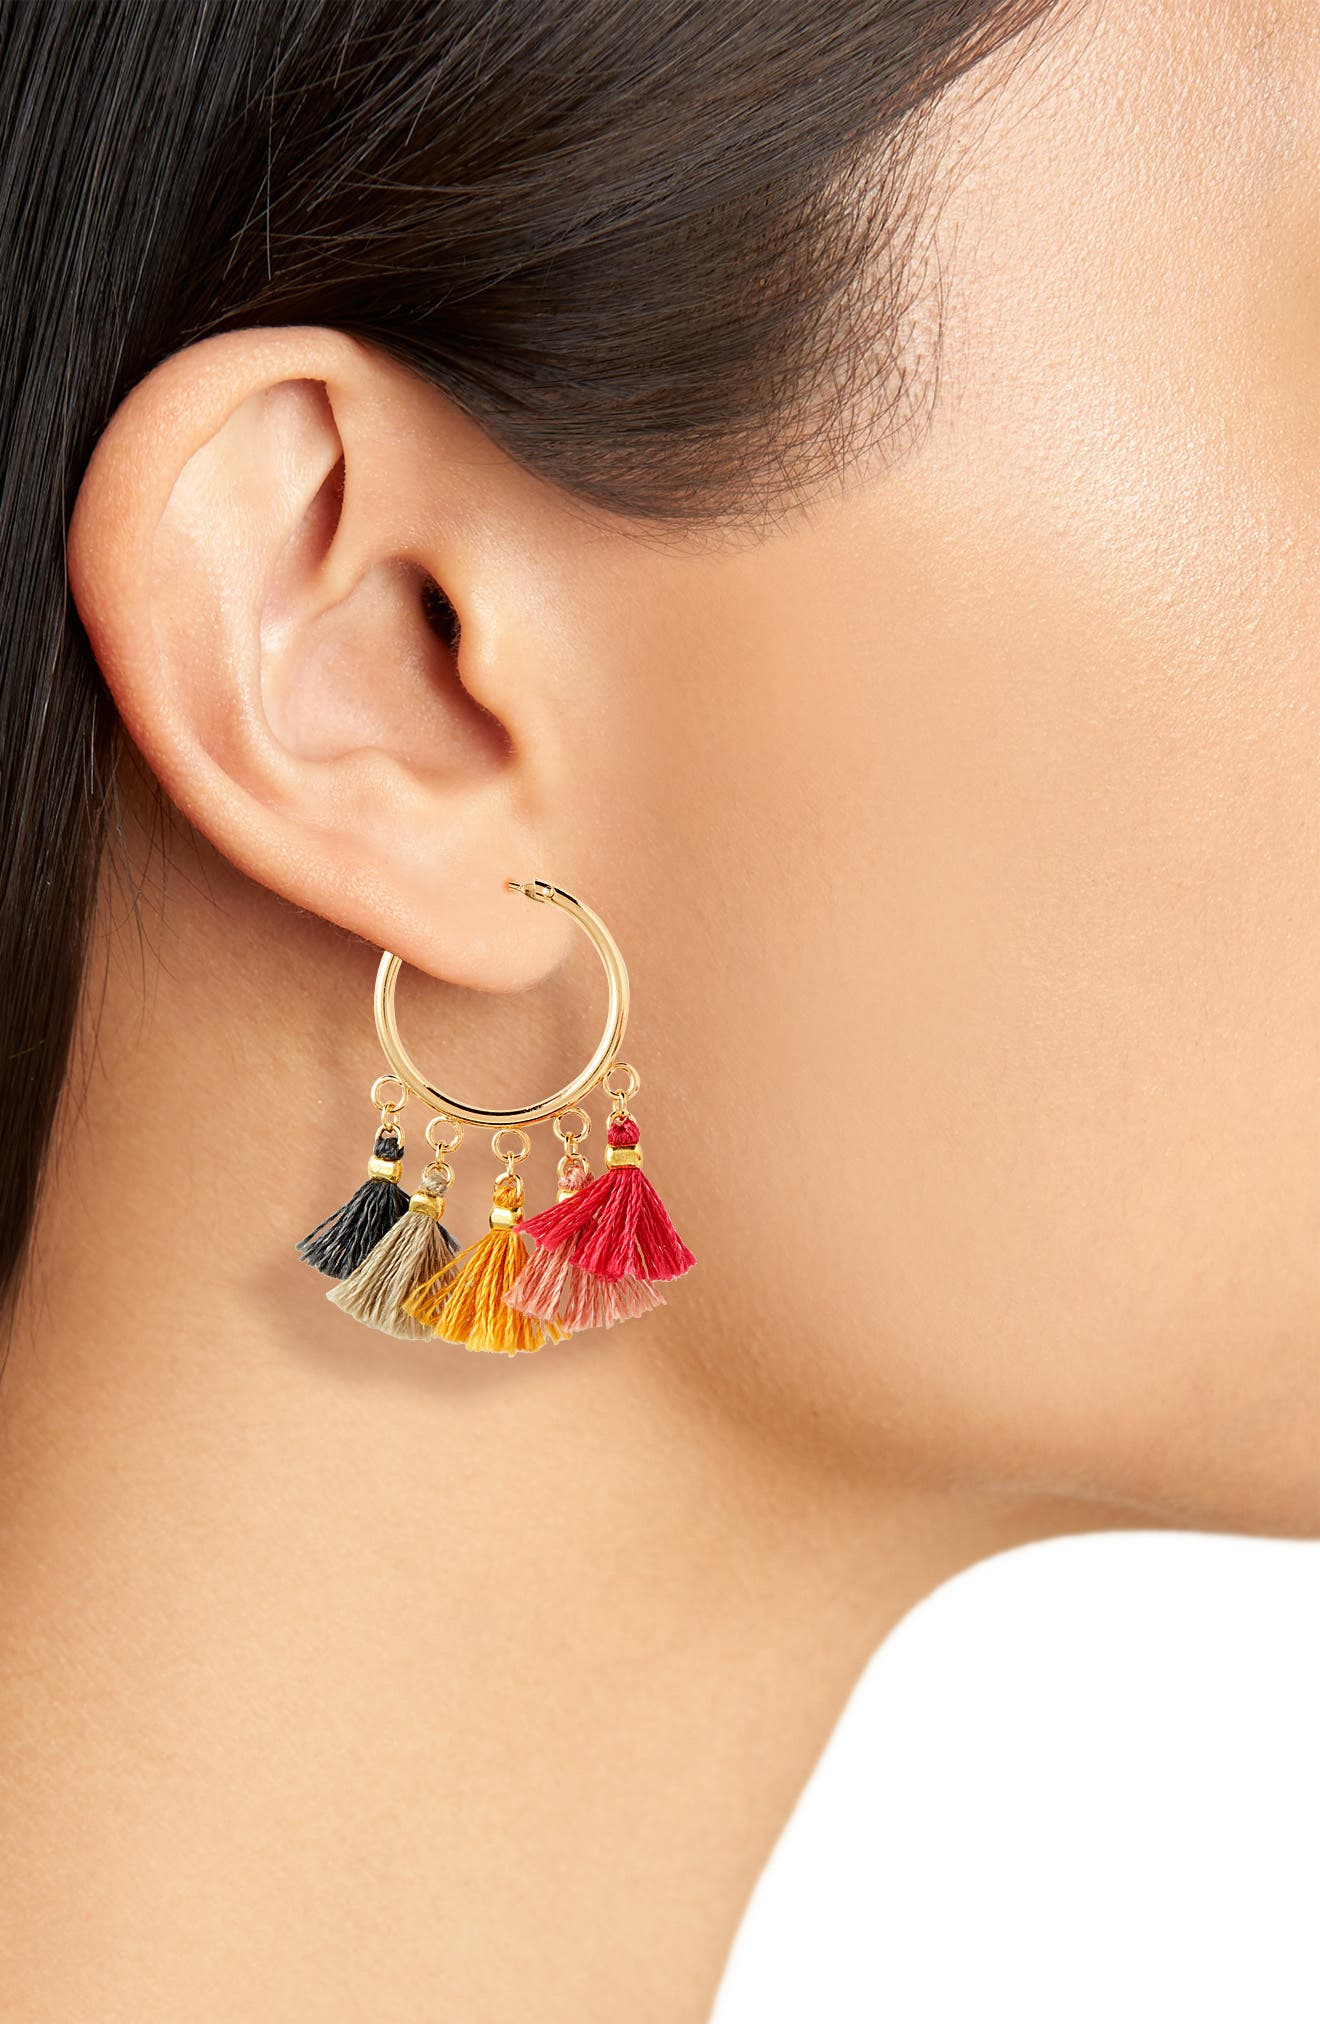 Sashi Lilu Hoop Earrings,                             Alternate thumbnail 2, color,                             710